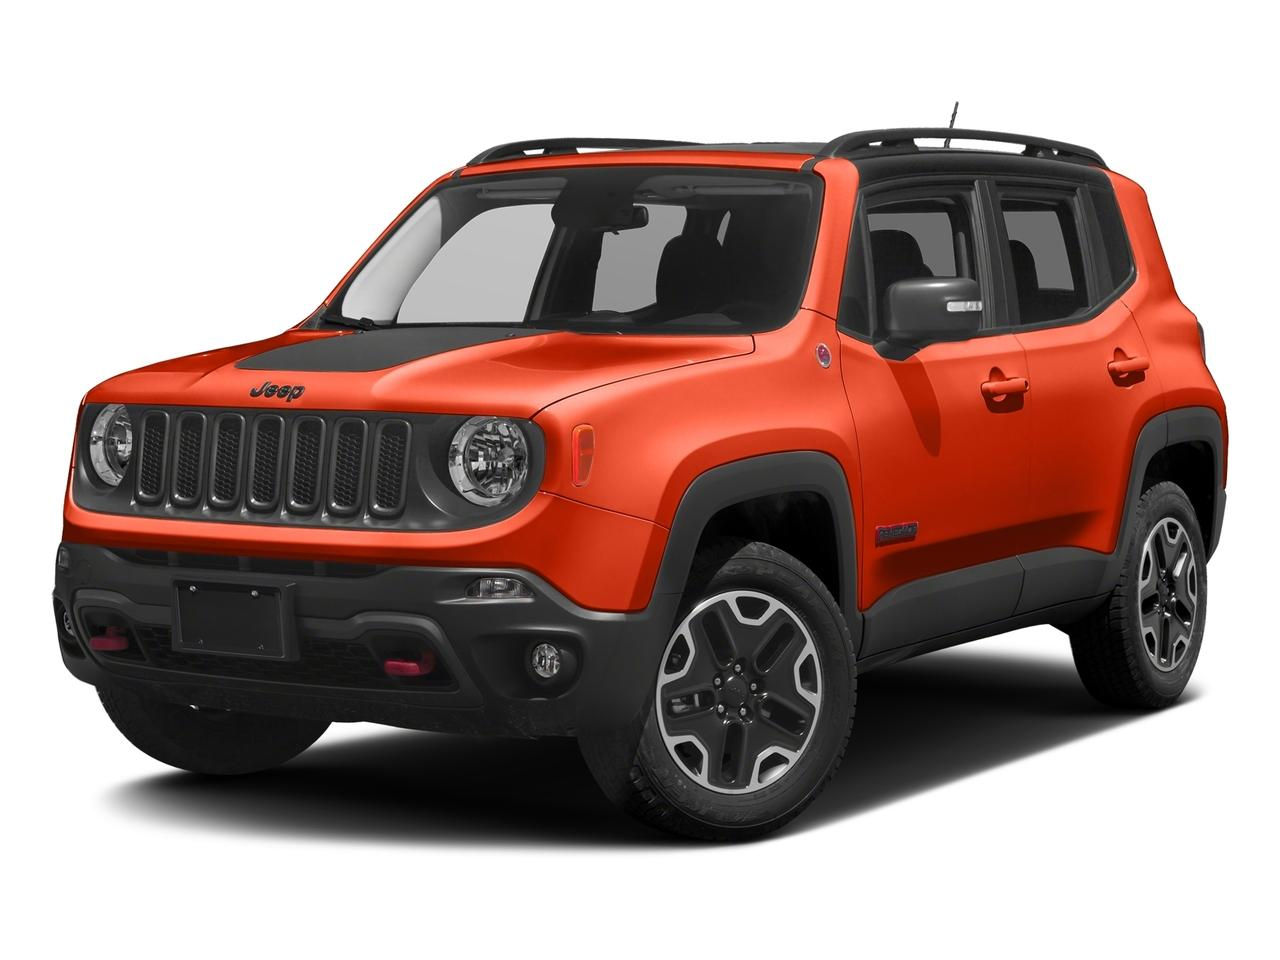 Used Jeep Renegade Vehicles For Sale In Kingston Pa Bonner